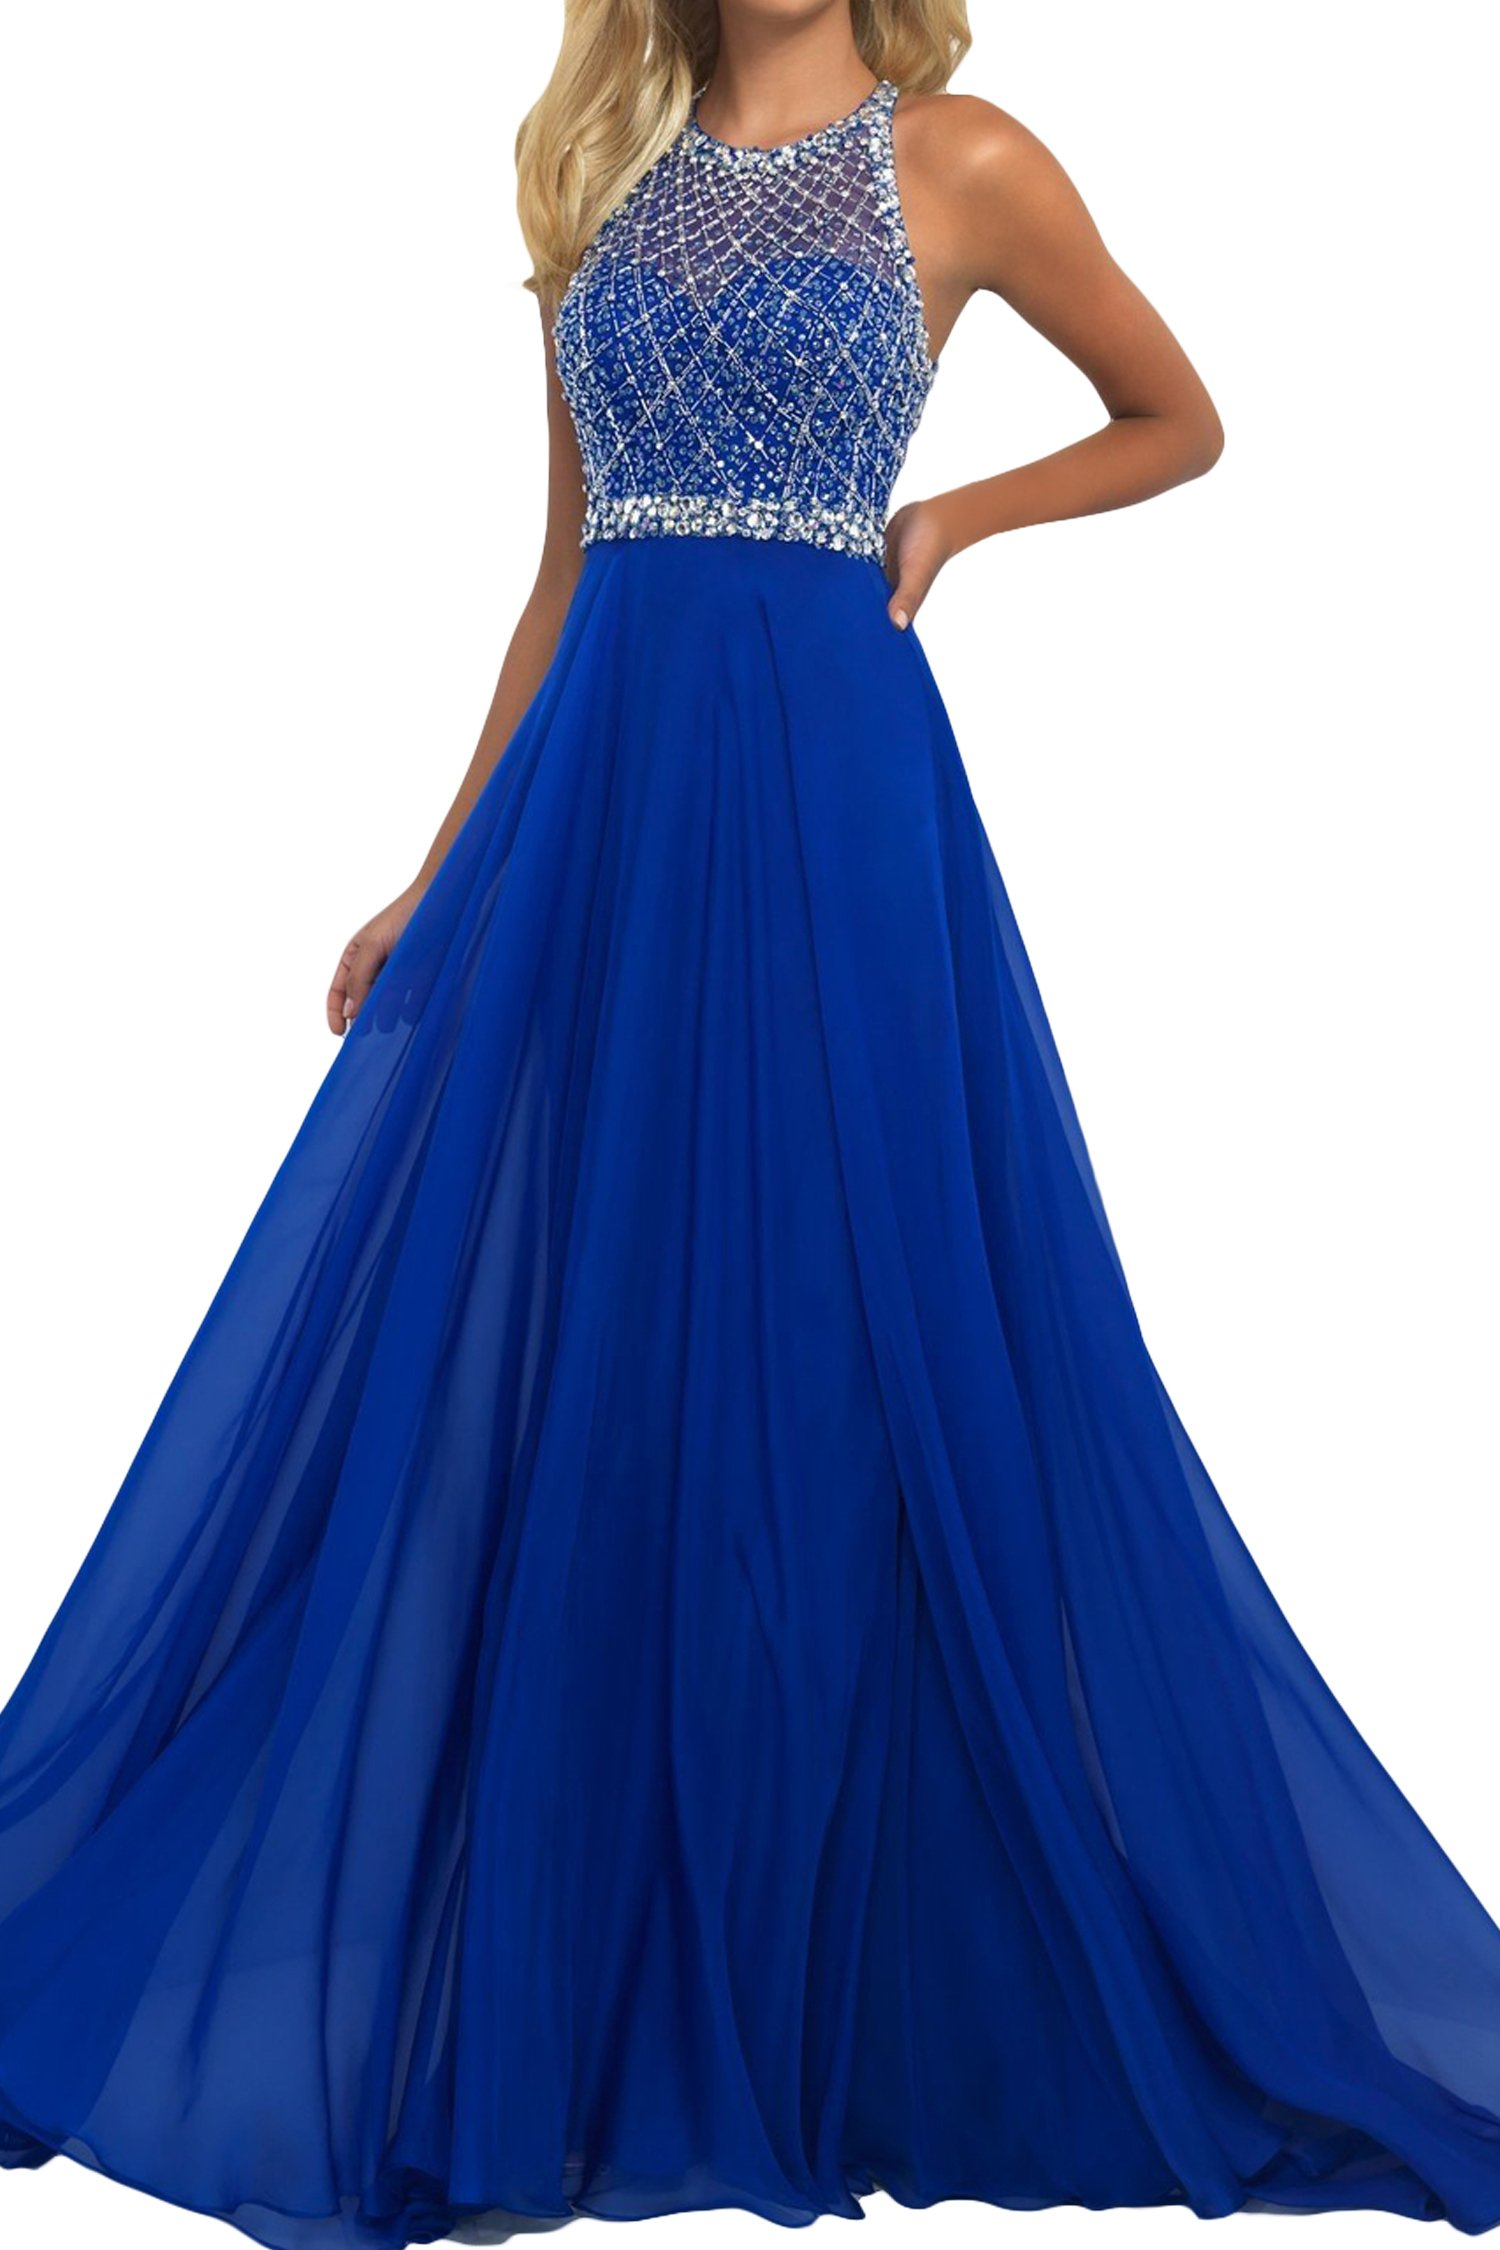 SeasonMall Women's Prom Dresses A Line Halter Open Back Chiffon & Tulle Dresses Size 2 Dark Royal Blue by SeasonMall